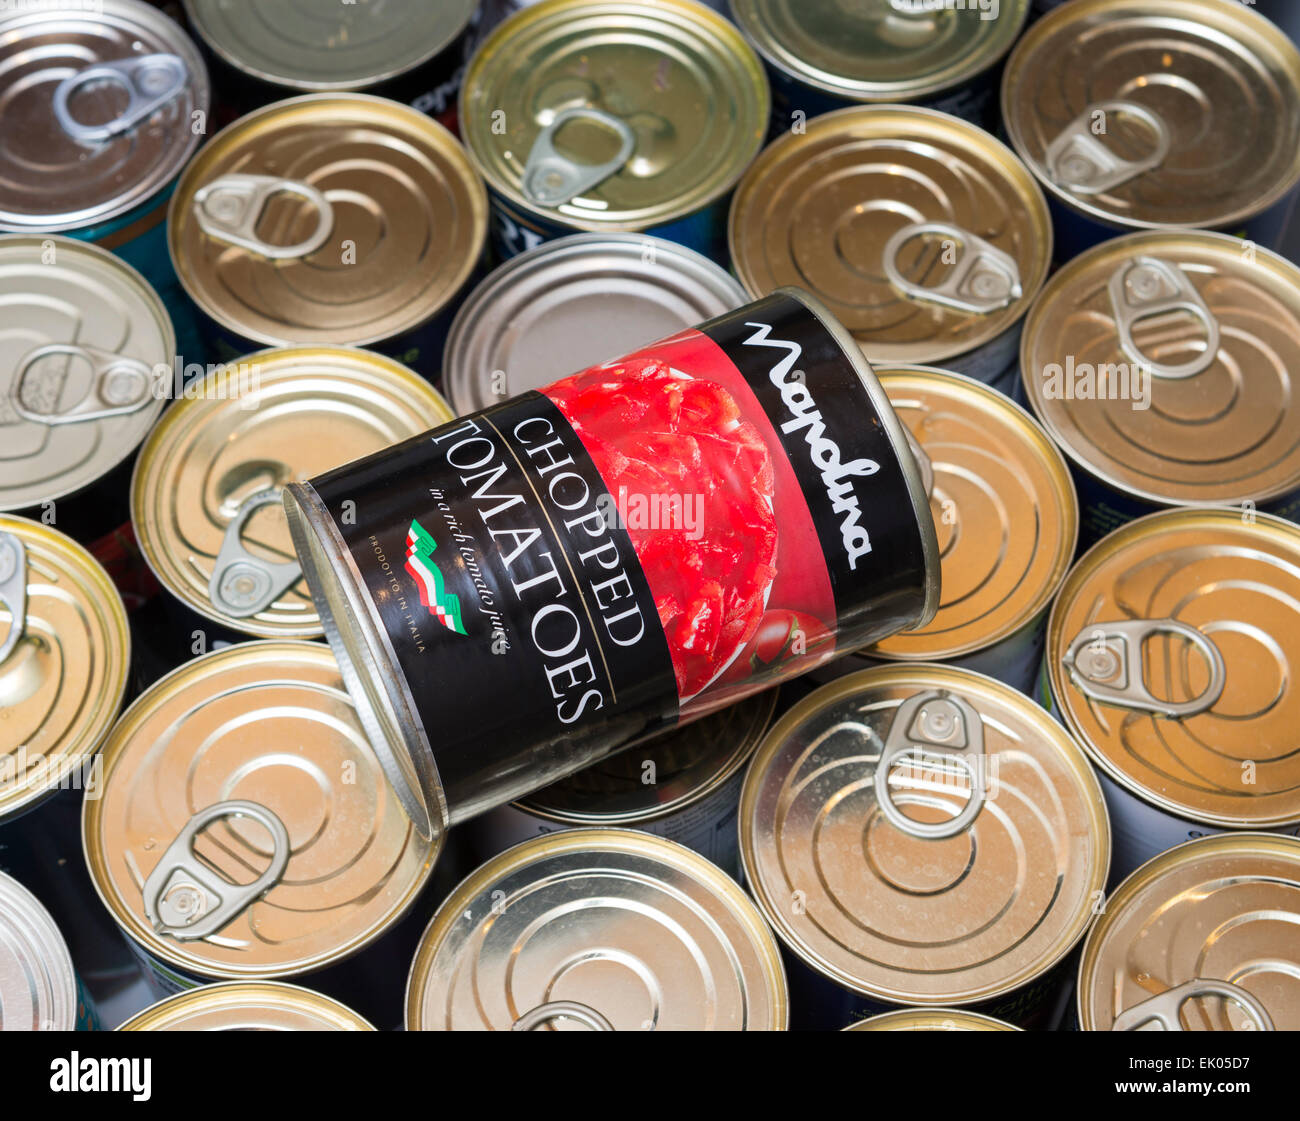 A can of chopped tomatoes in a draw of canned food. - Stock Image